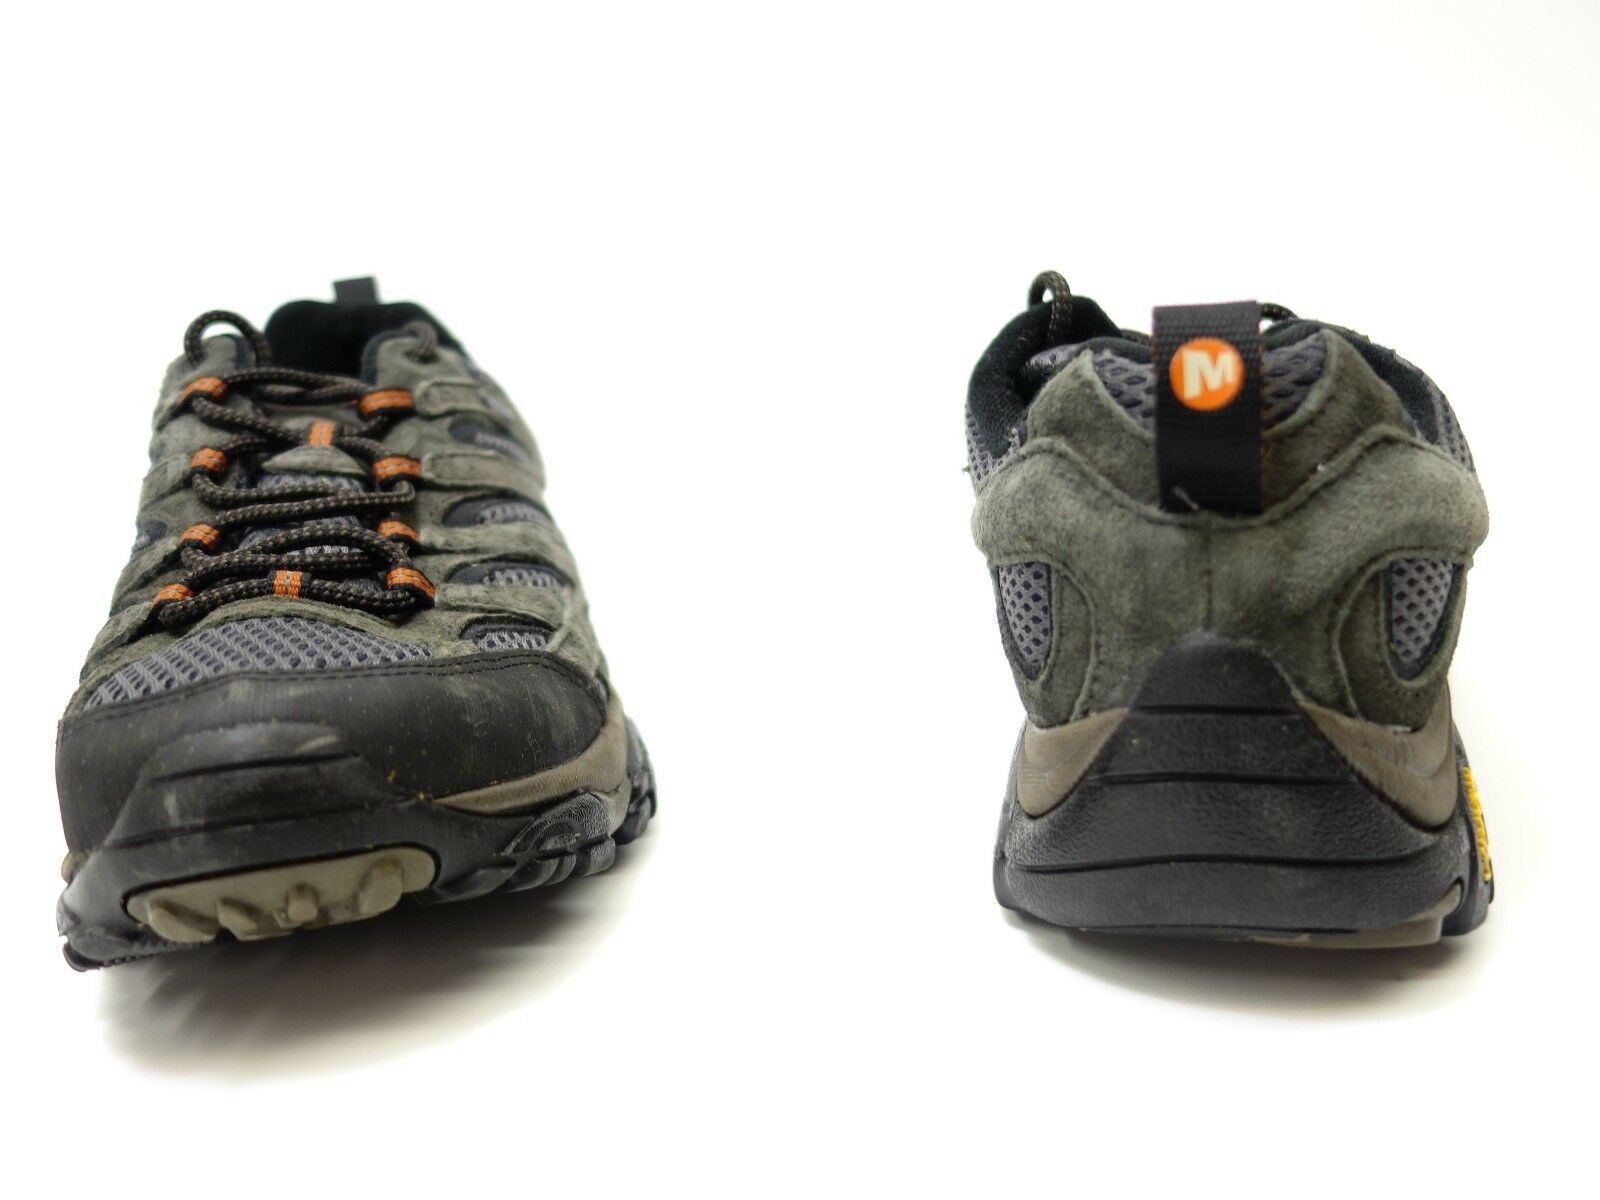 Merrell Hombre Moab 2 Low Impermeable Impermeable Low Athletic Soporte Senderismo Zapatos Talla aca28d